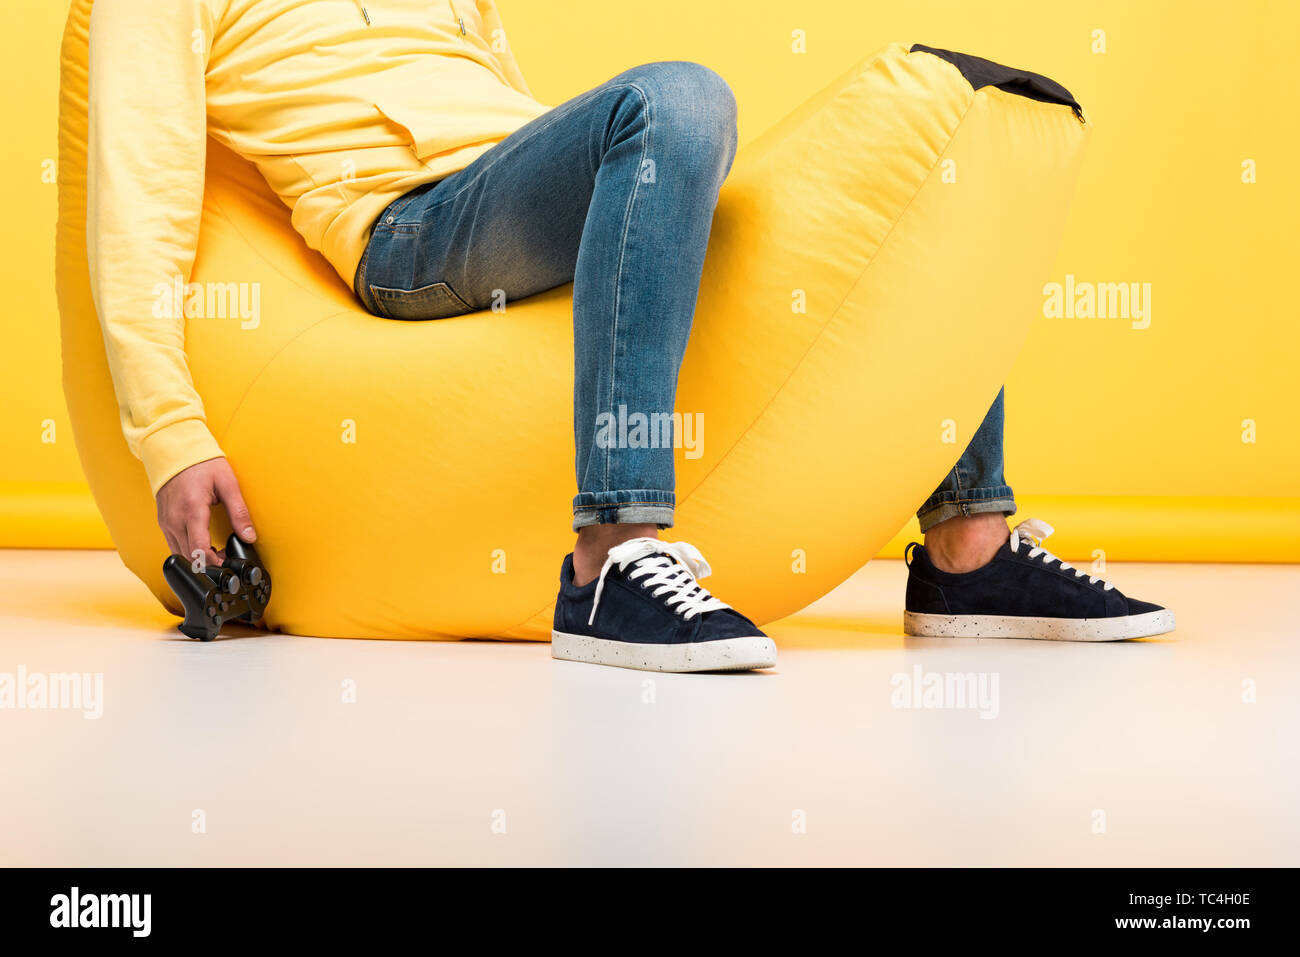 Cropped view of man sitting on bean bag chair with joystick - Stock Image